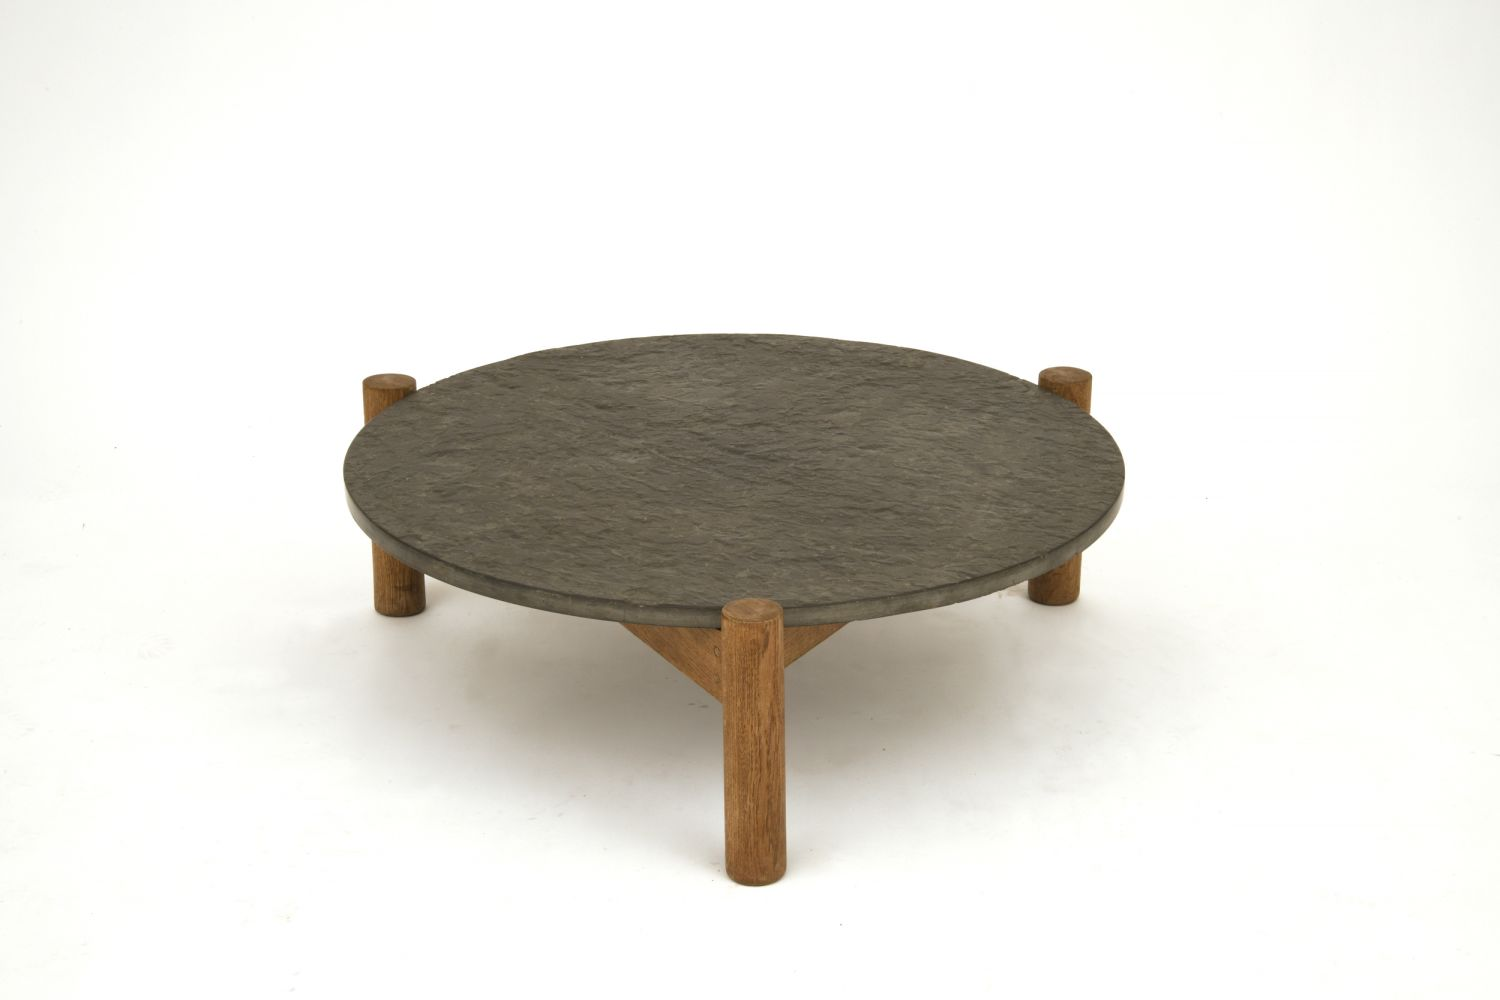 Charlotte Perriand - Coffee table from top view